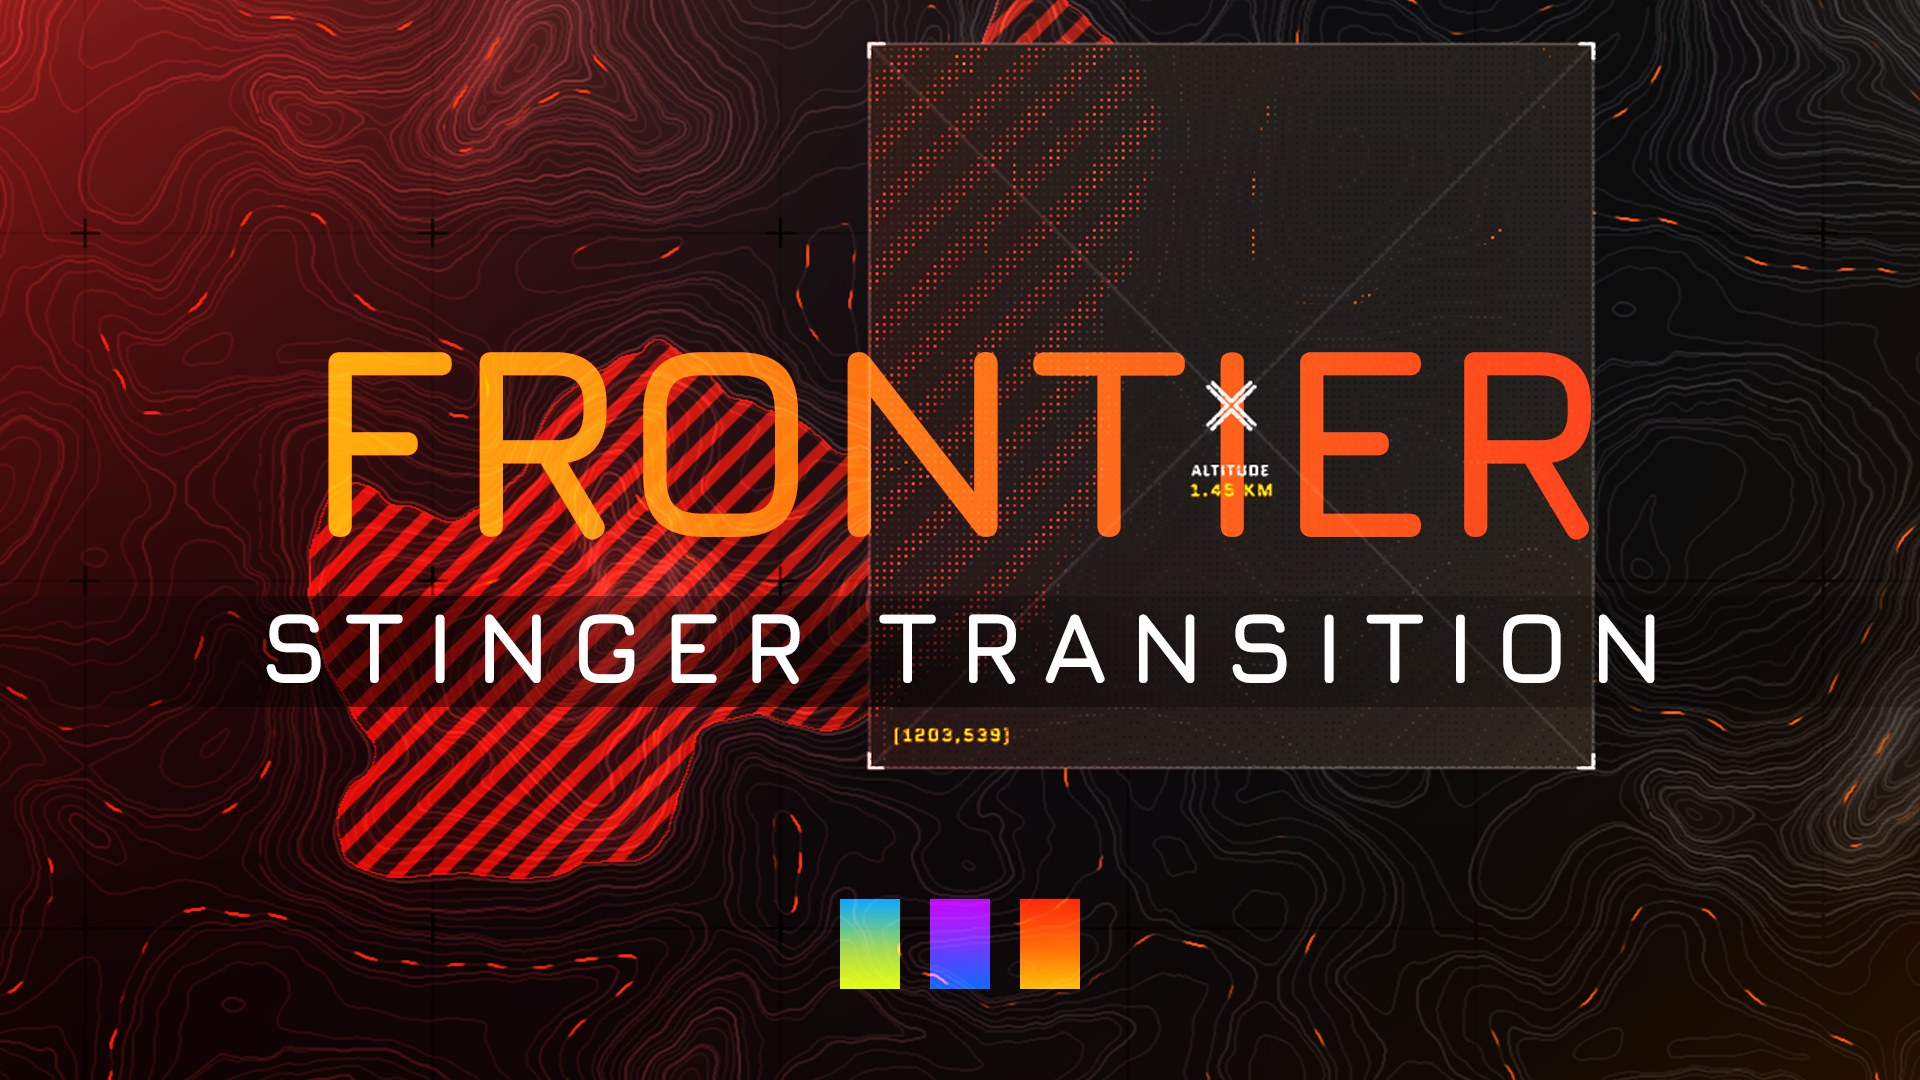 Frontier Stinger Transition - Visuals by Impulse